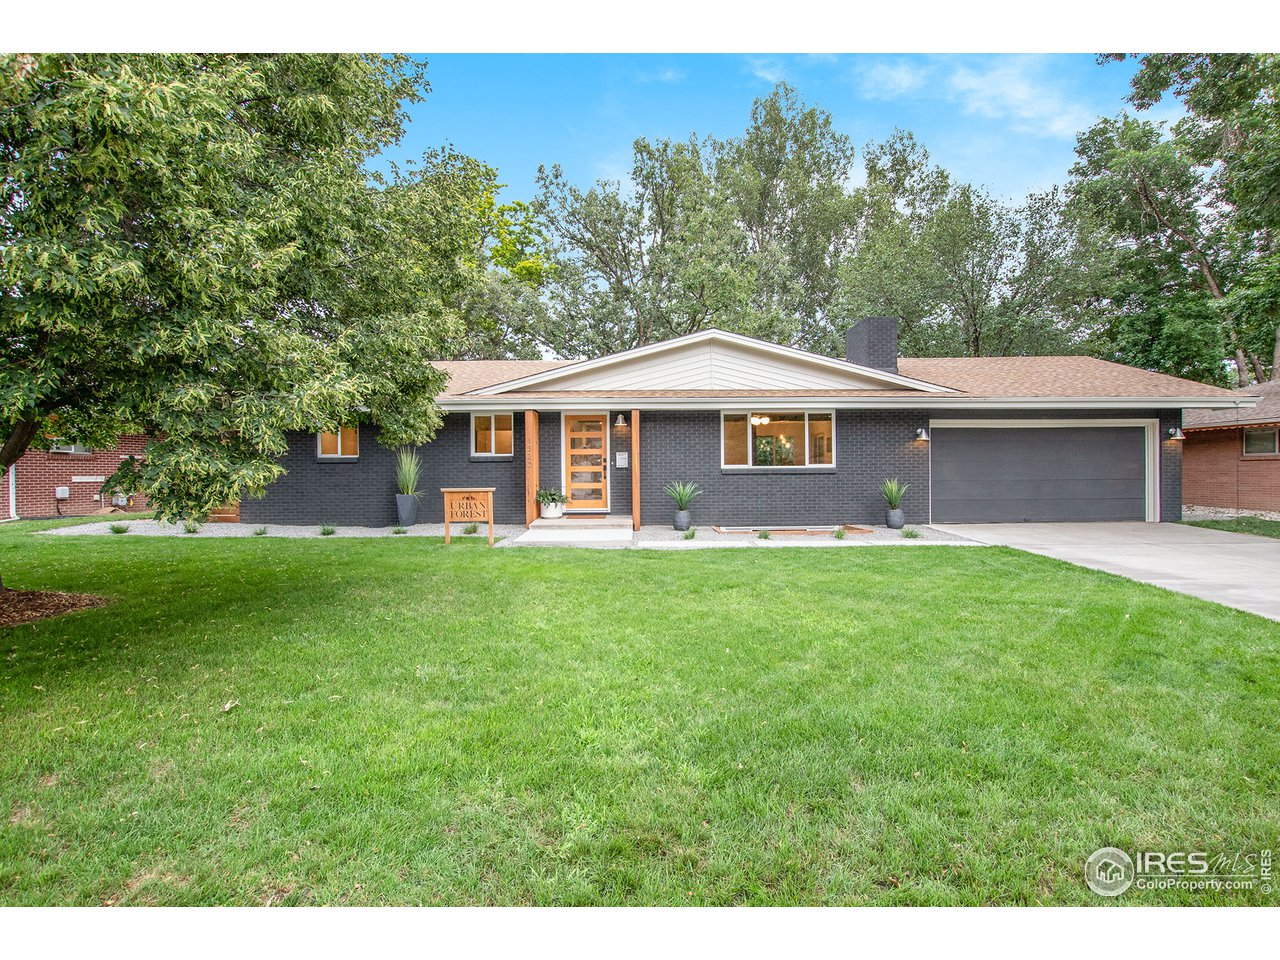 1320 Luke St, Fort Collins CO 80524